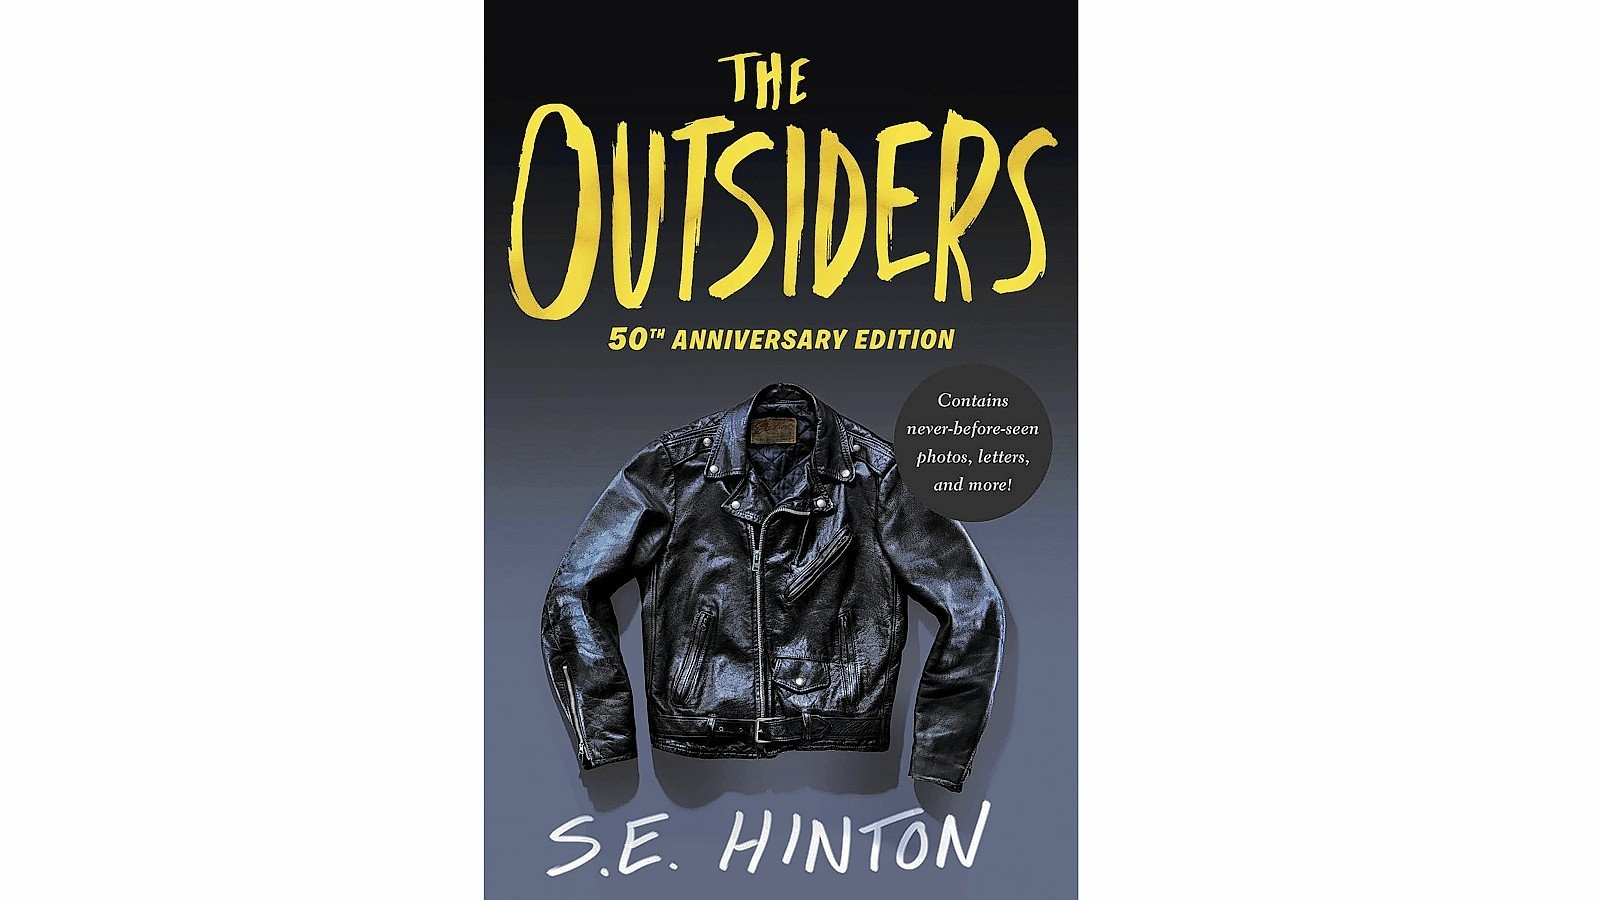 The Outsiders Chicago Tribune